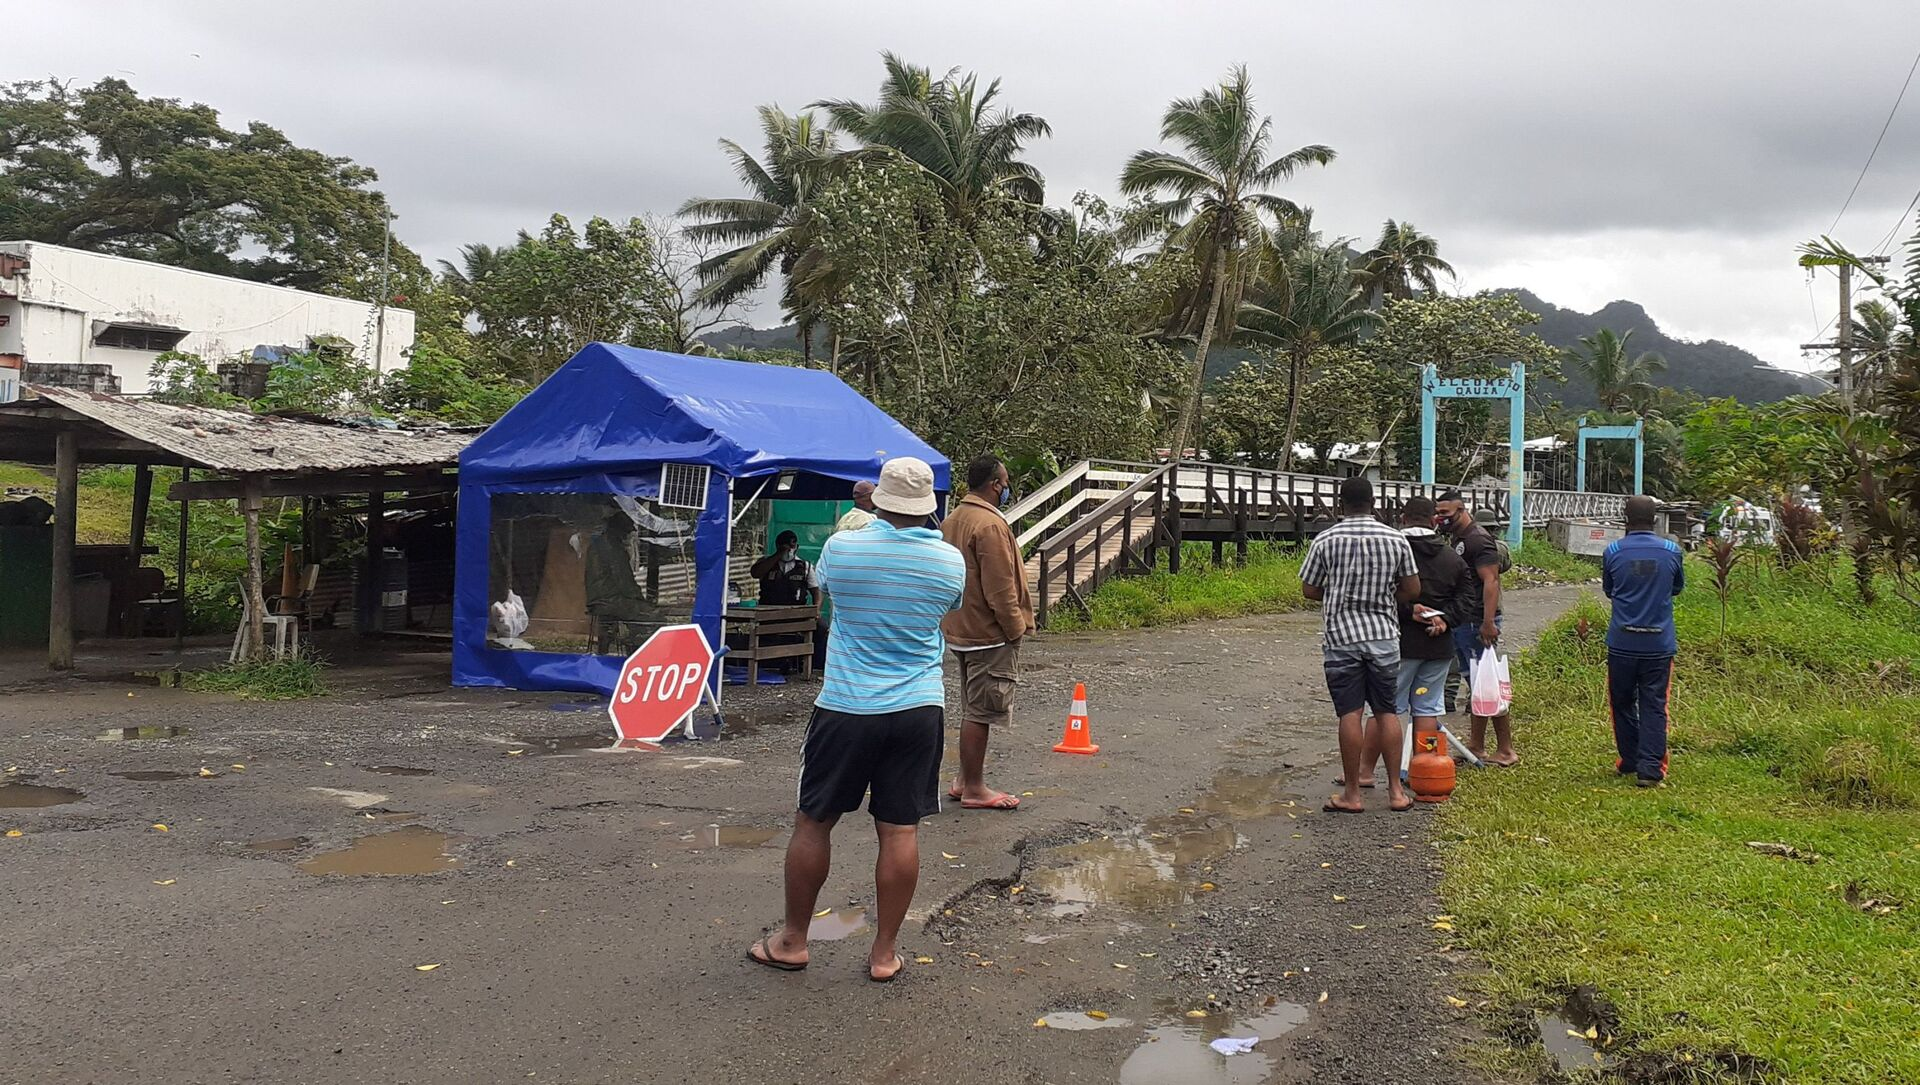 Family members wait at the entrance to a village settlement to deliver food to relatives that are in lockdown as an outbreak of the coronavirus disease (COVID-19) affects Lami, Fiji, June 26, 2021.  - Sputnik International, 1920, 26.07.2021